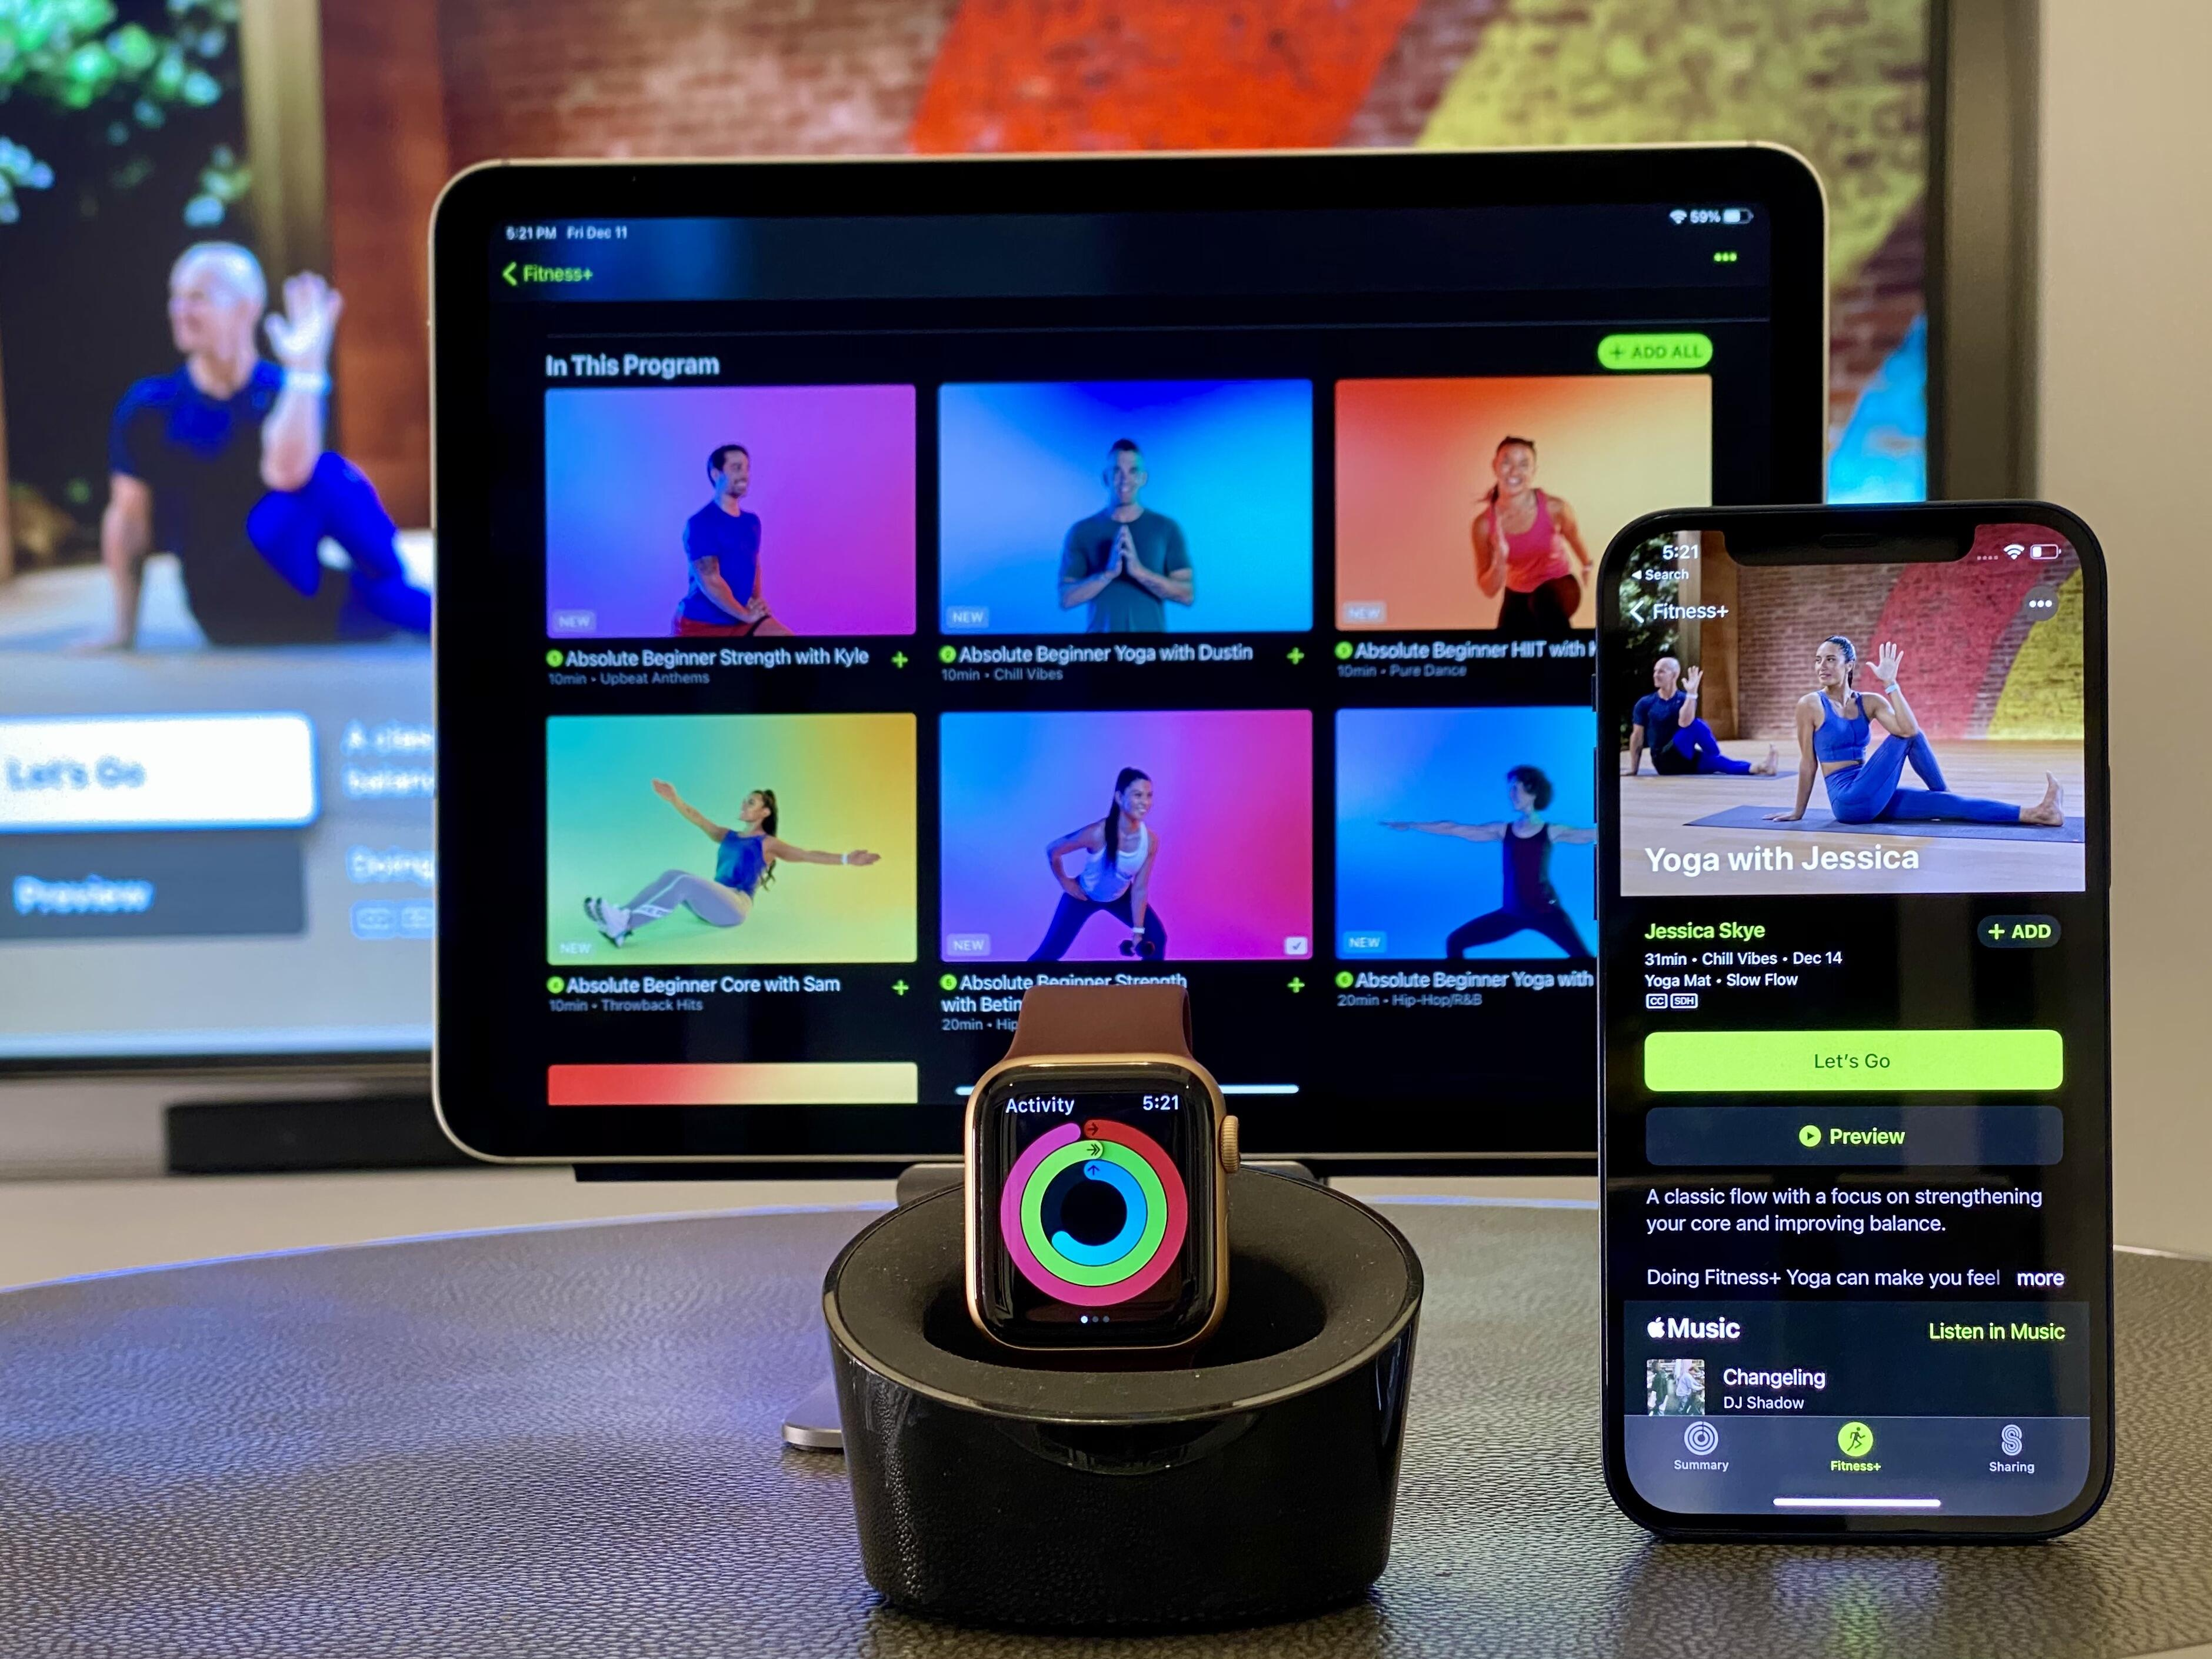 <p>Apple's Fitness Plus app is available on the iPhone, iPad and AppleTV.&nbsp;</p>